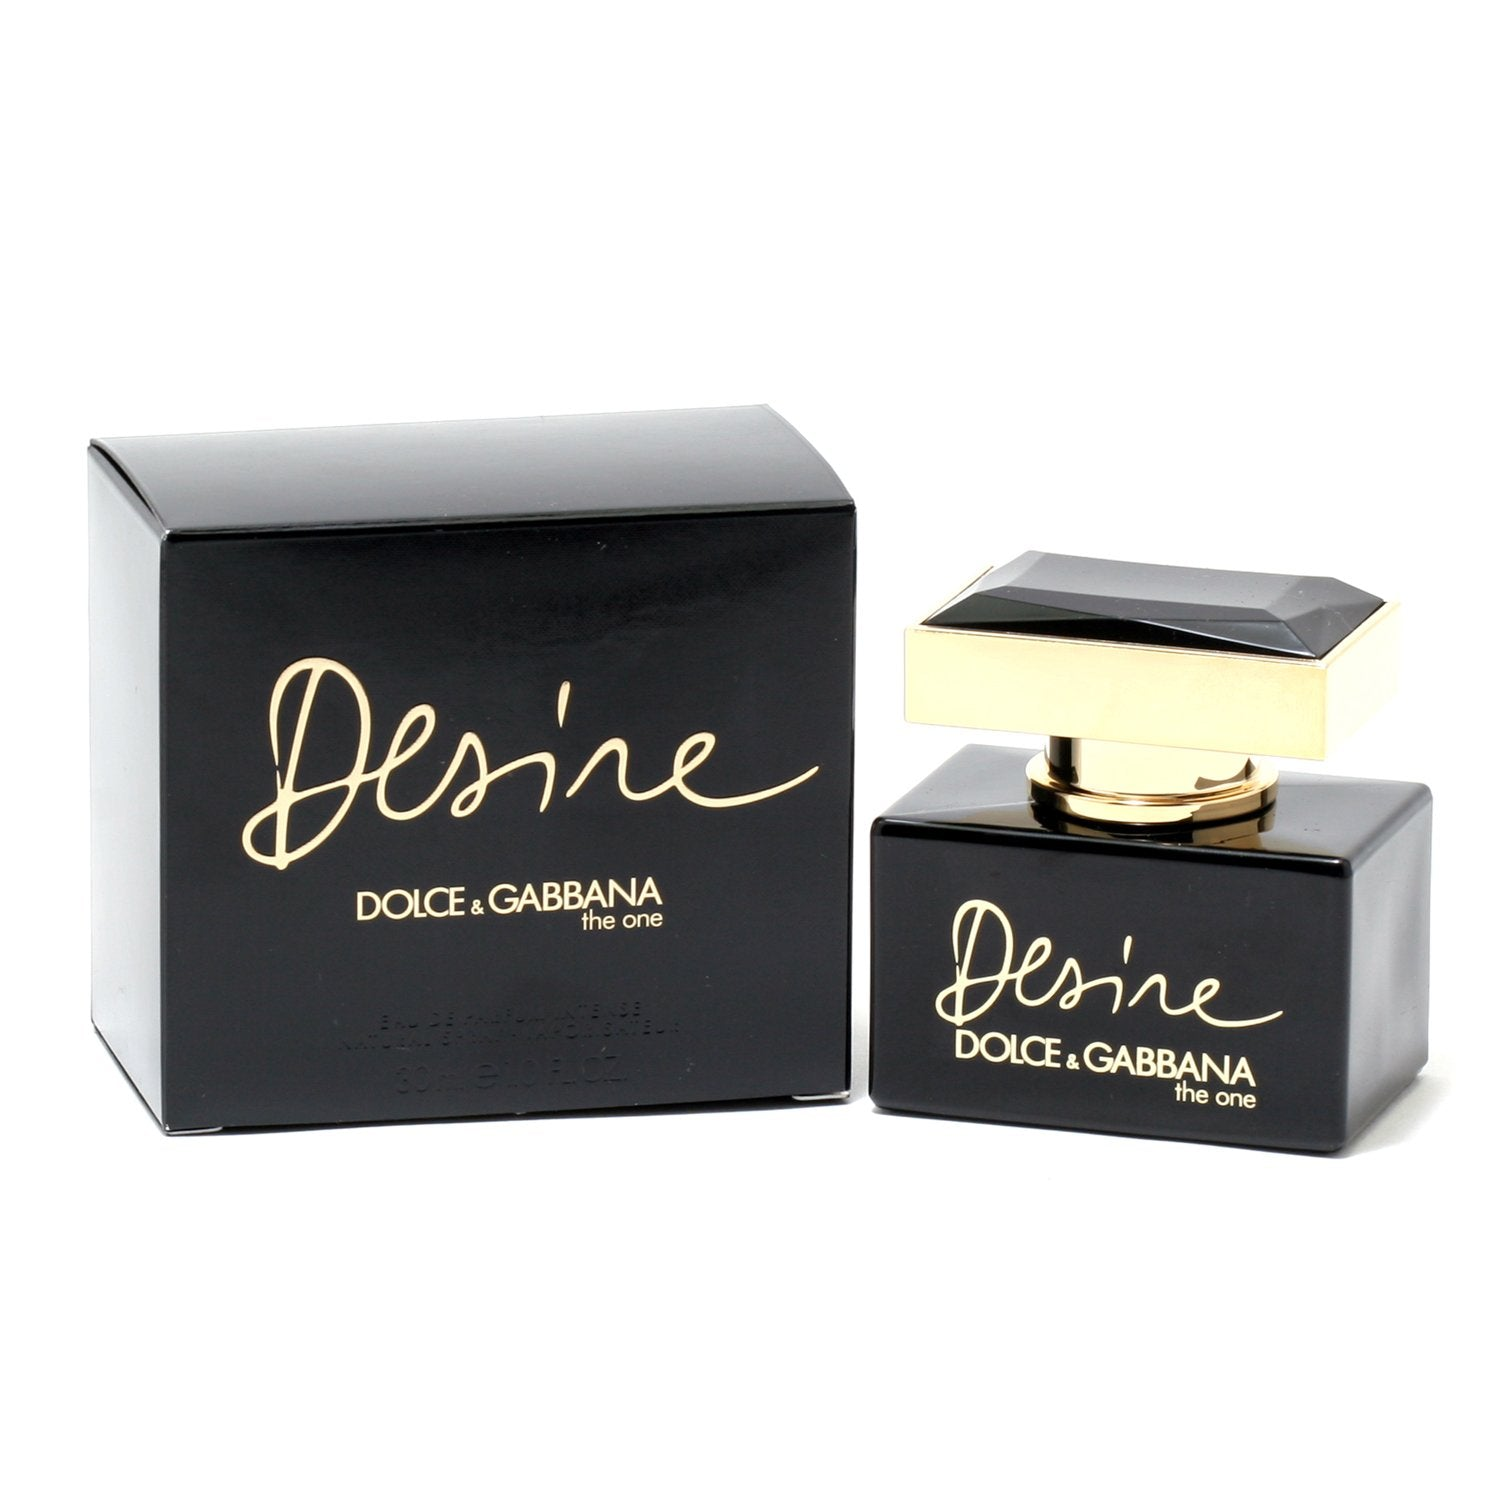 Perfume - DOLCE & GABBANA THE ONE DESIRE FOR WOMEN - EAU DE PARFUM SPRAY